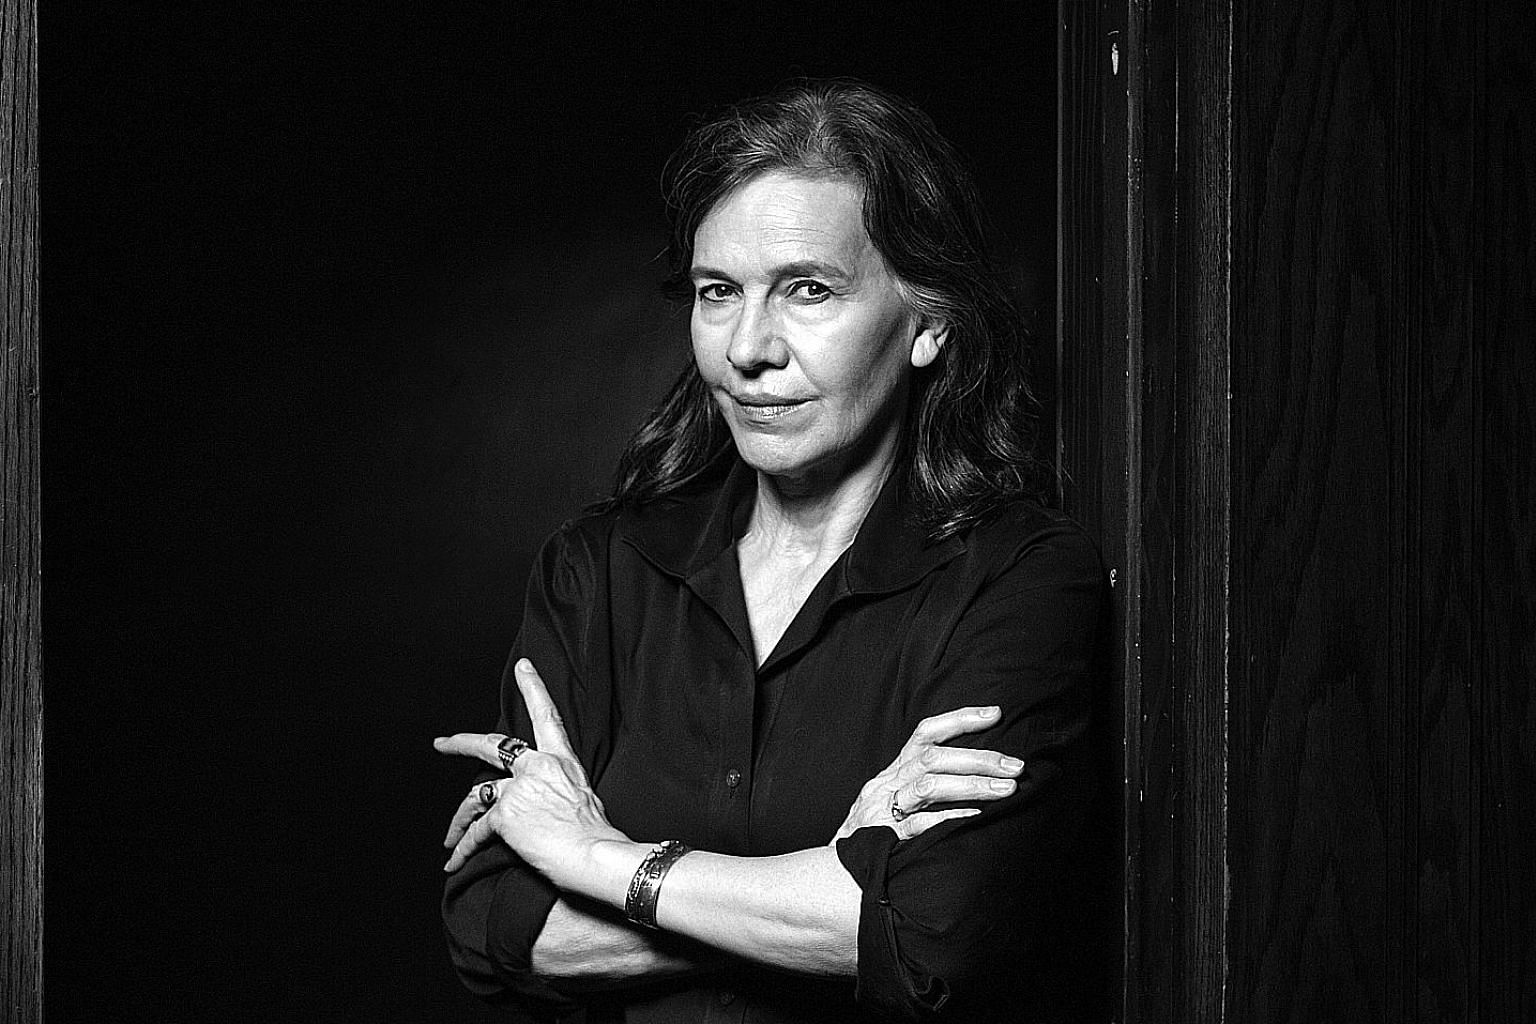 Louise Erdrich wrote the first drafts of Future Home after former United States president George W. Bush won the 2000 US election.